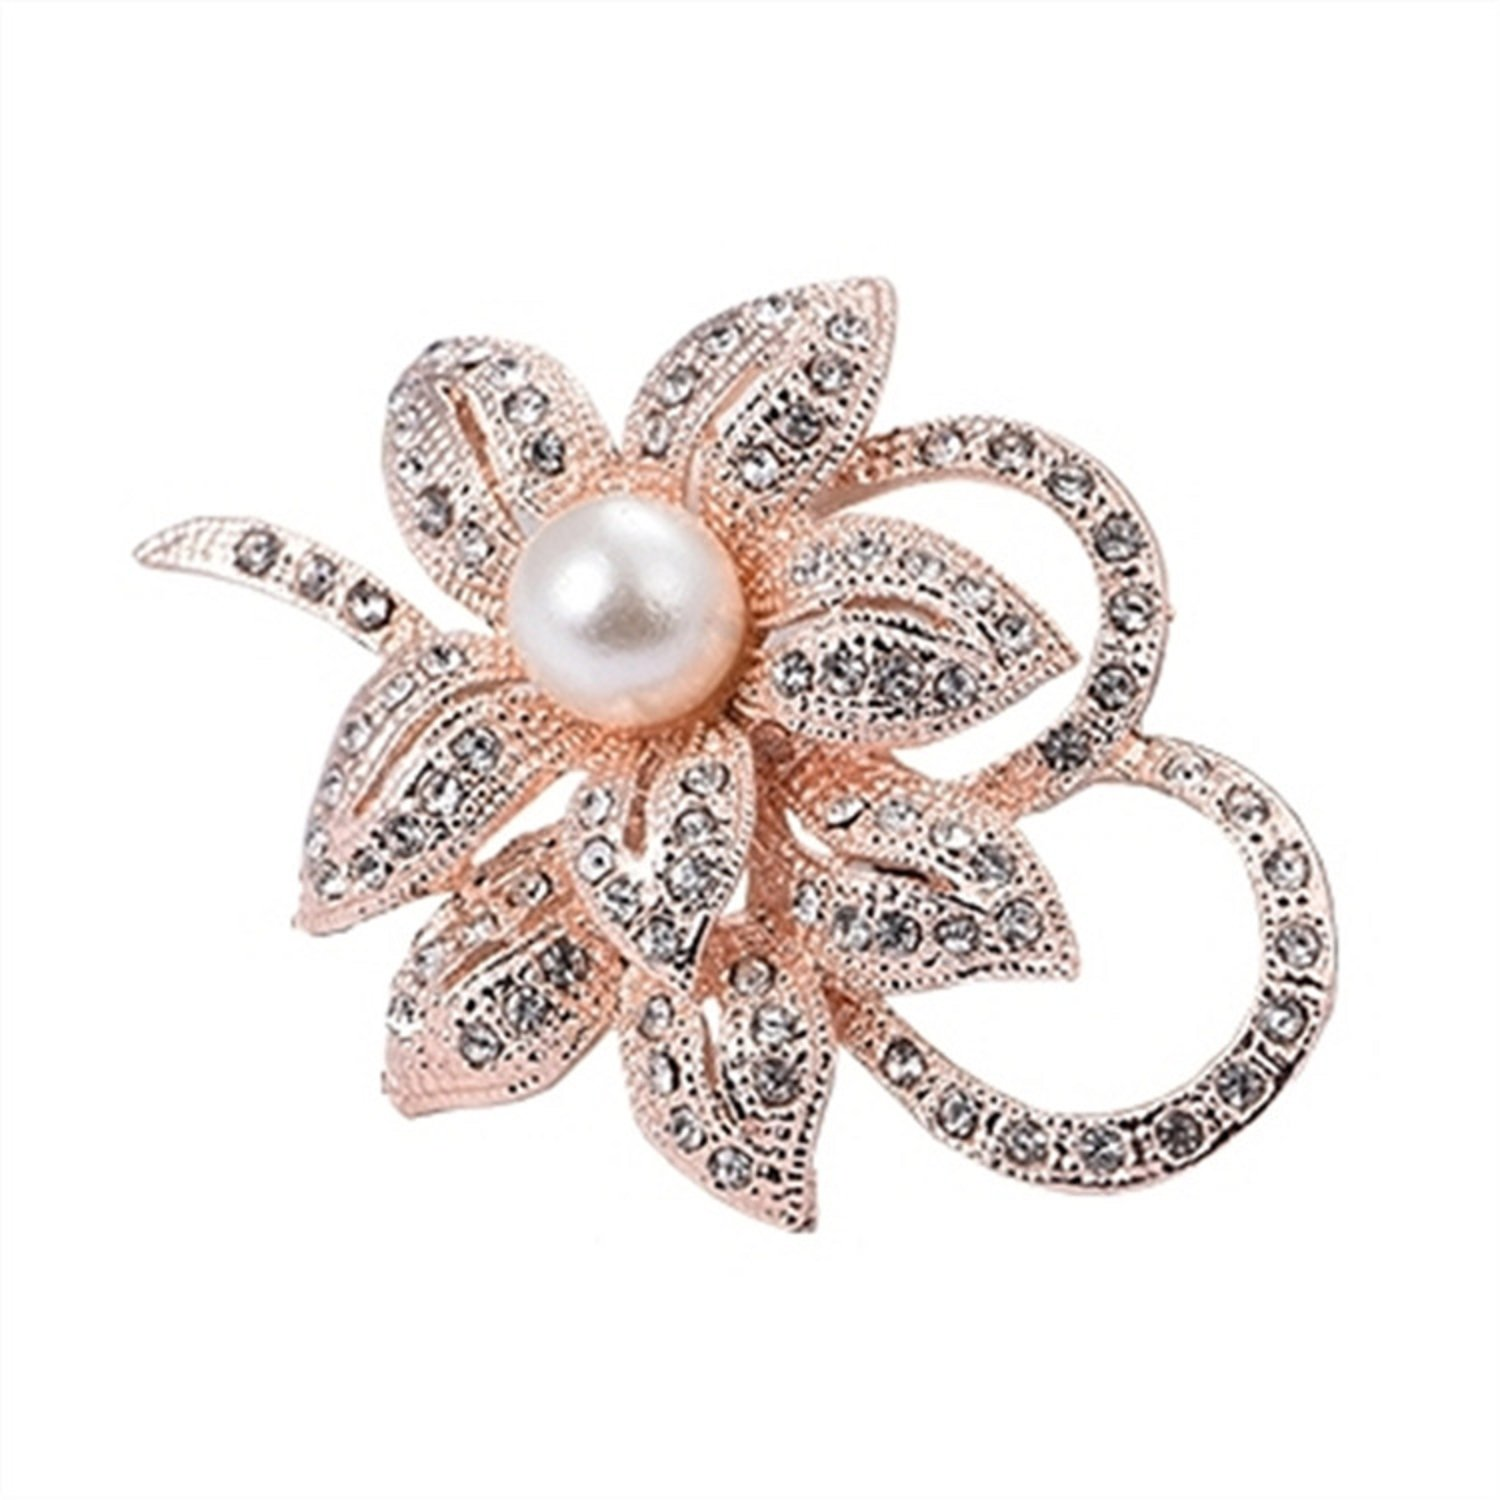 Jewby Fashionable Brooch Pins for Women Bouquet Flower Wedding Created Crystal Brooch (Rose gold)